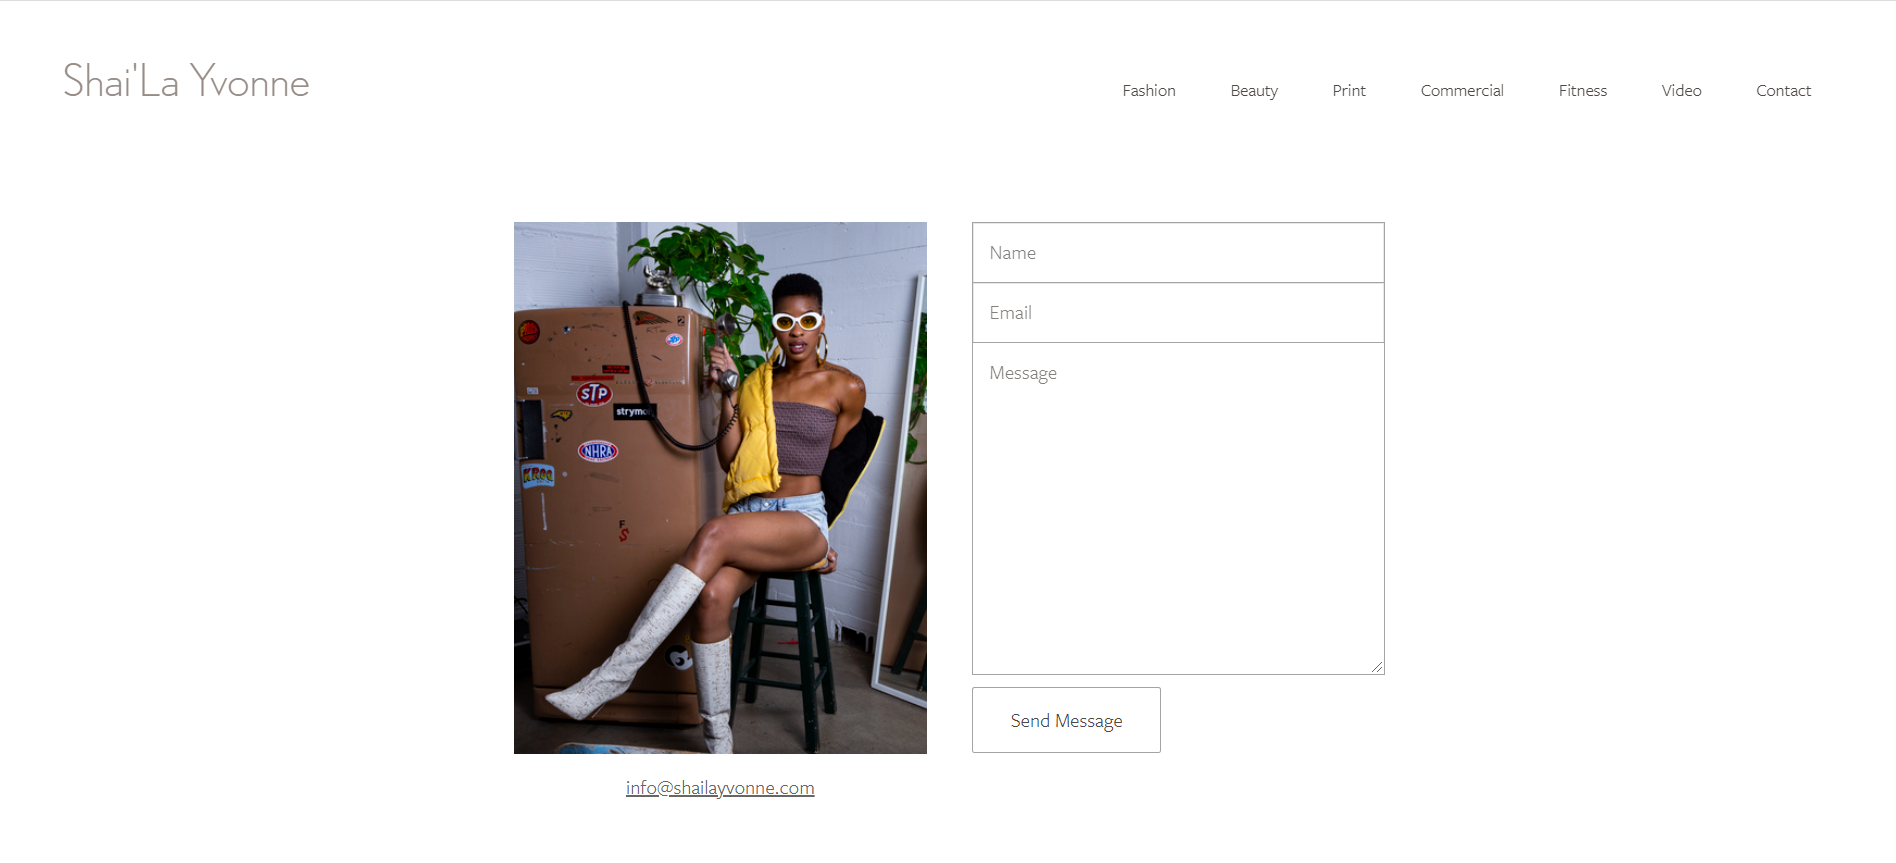 An example of a contact page of a model portfolio website